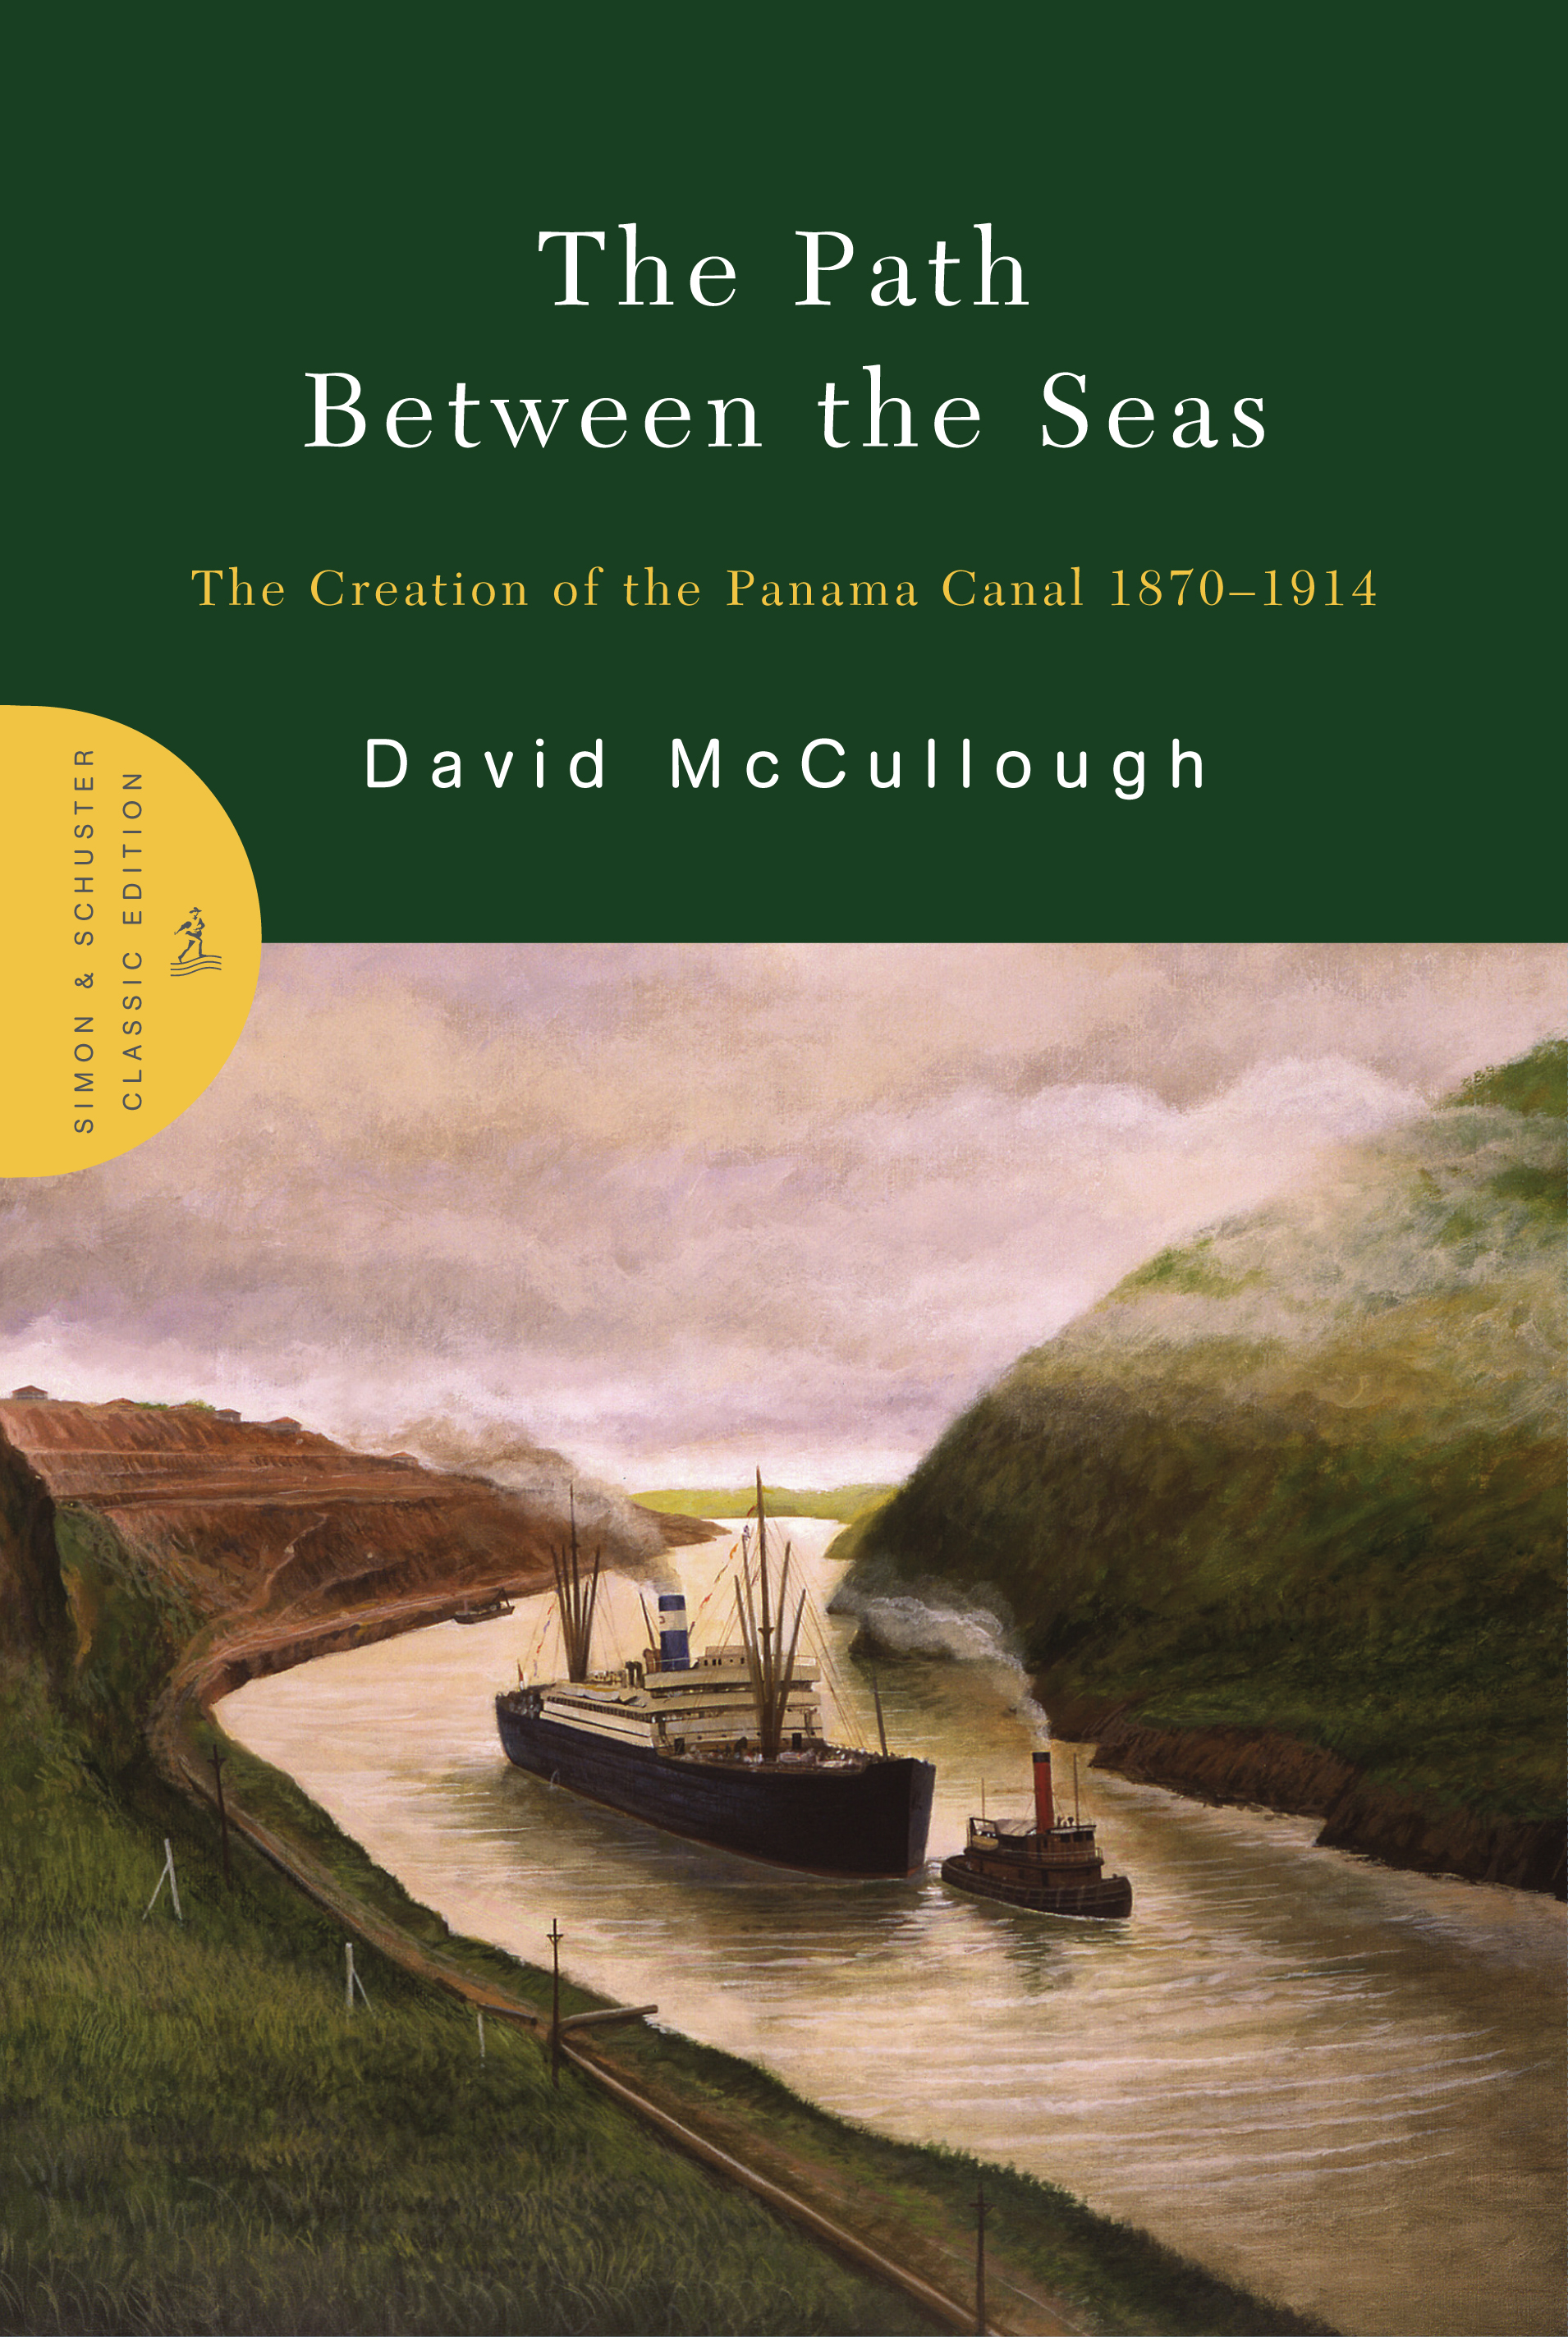 The Path Between the Seas | Book by David McCullough | Official ...